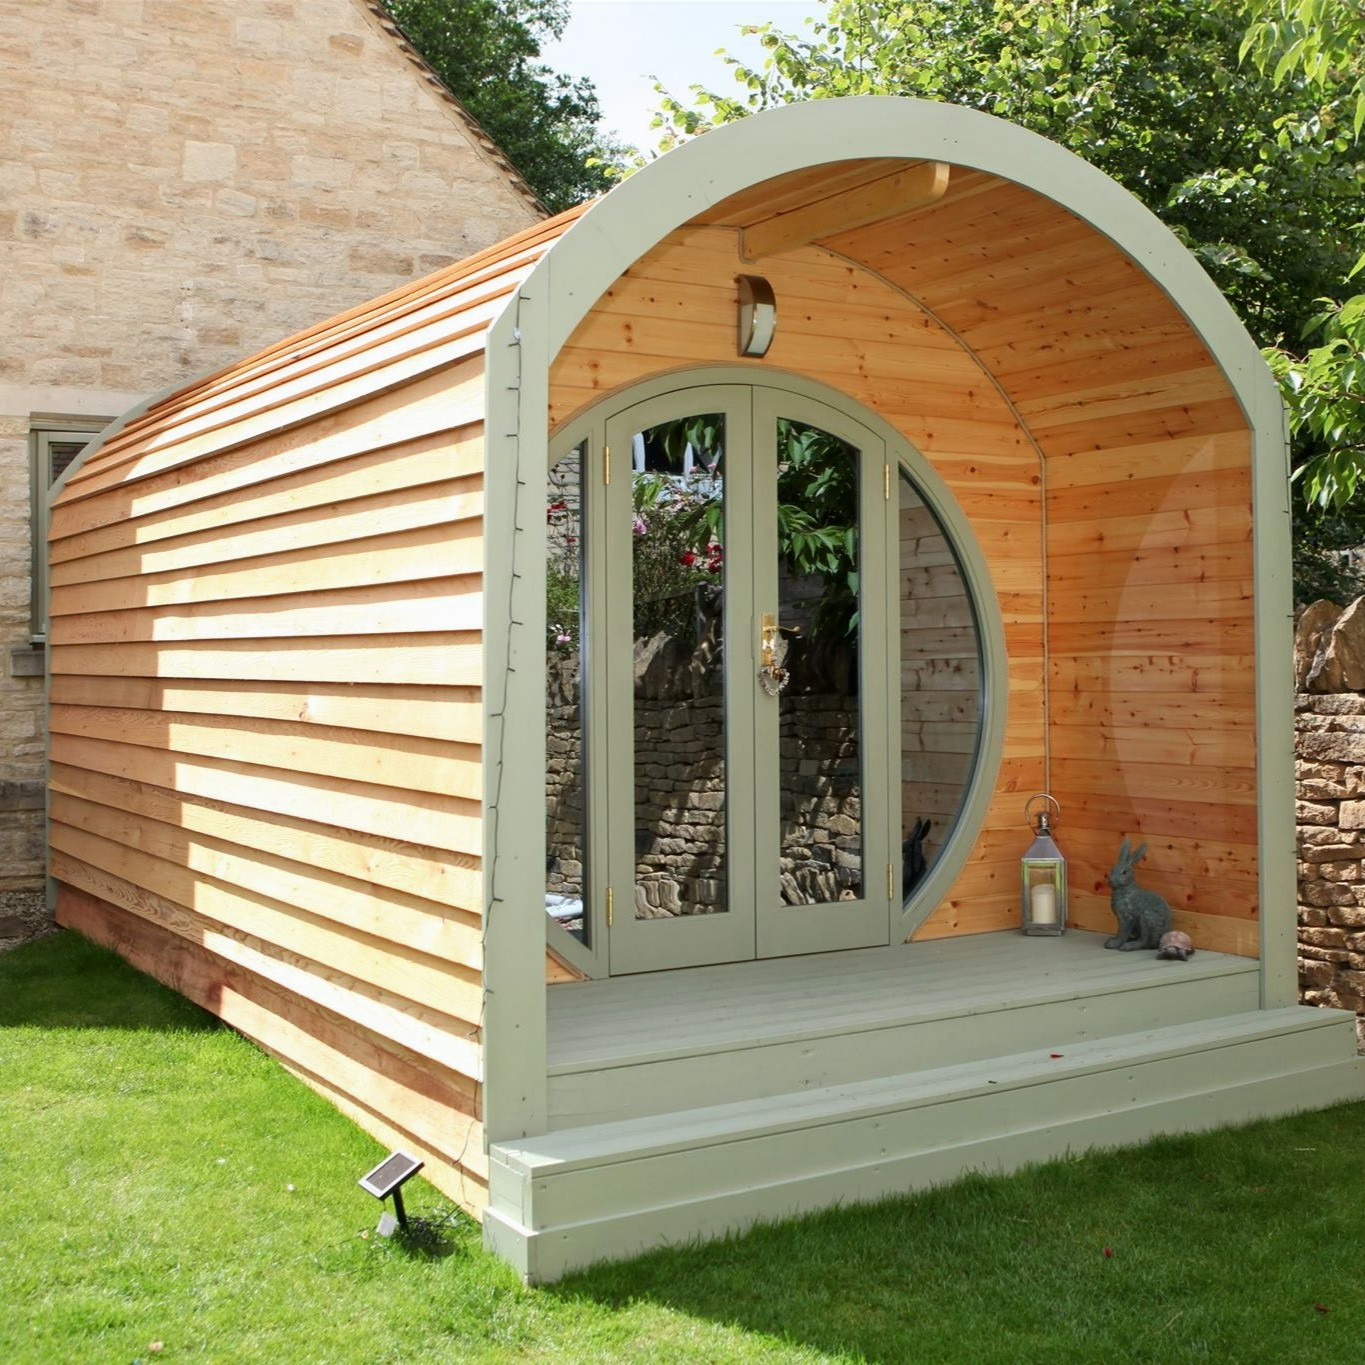 The Mini Pod by My Shire Houses